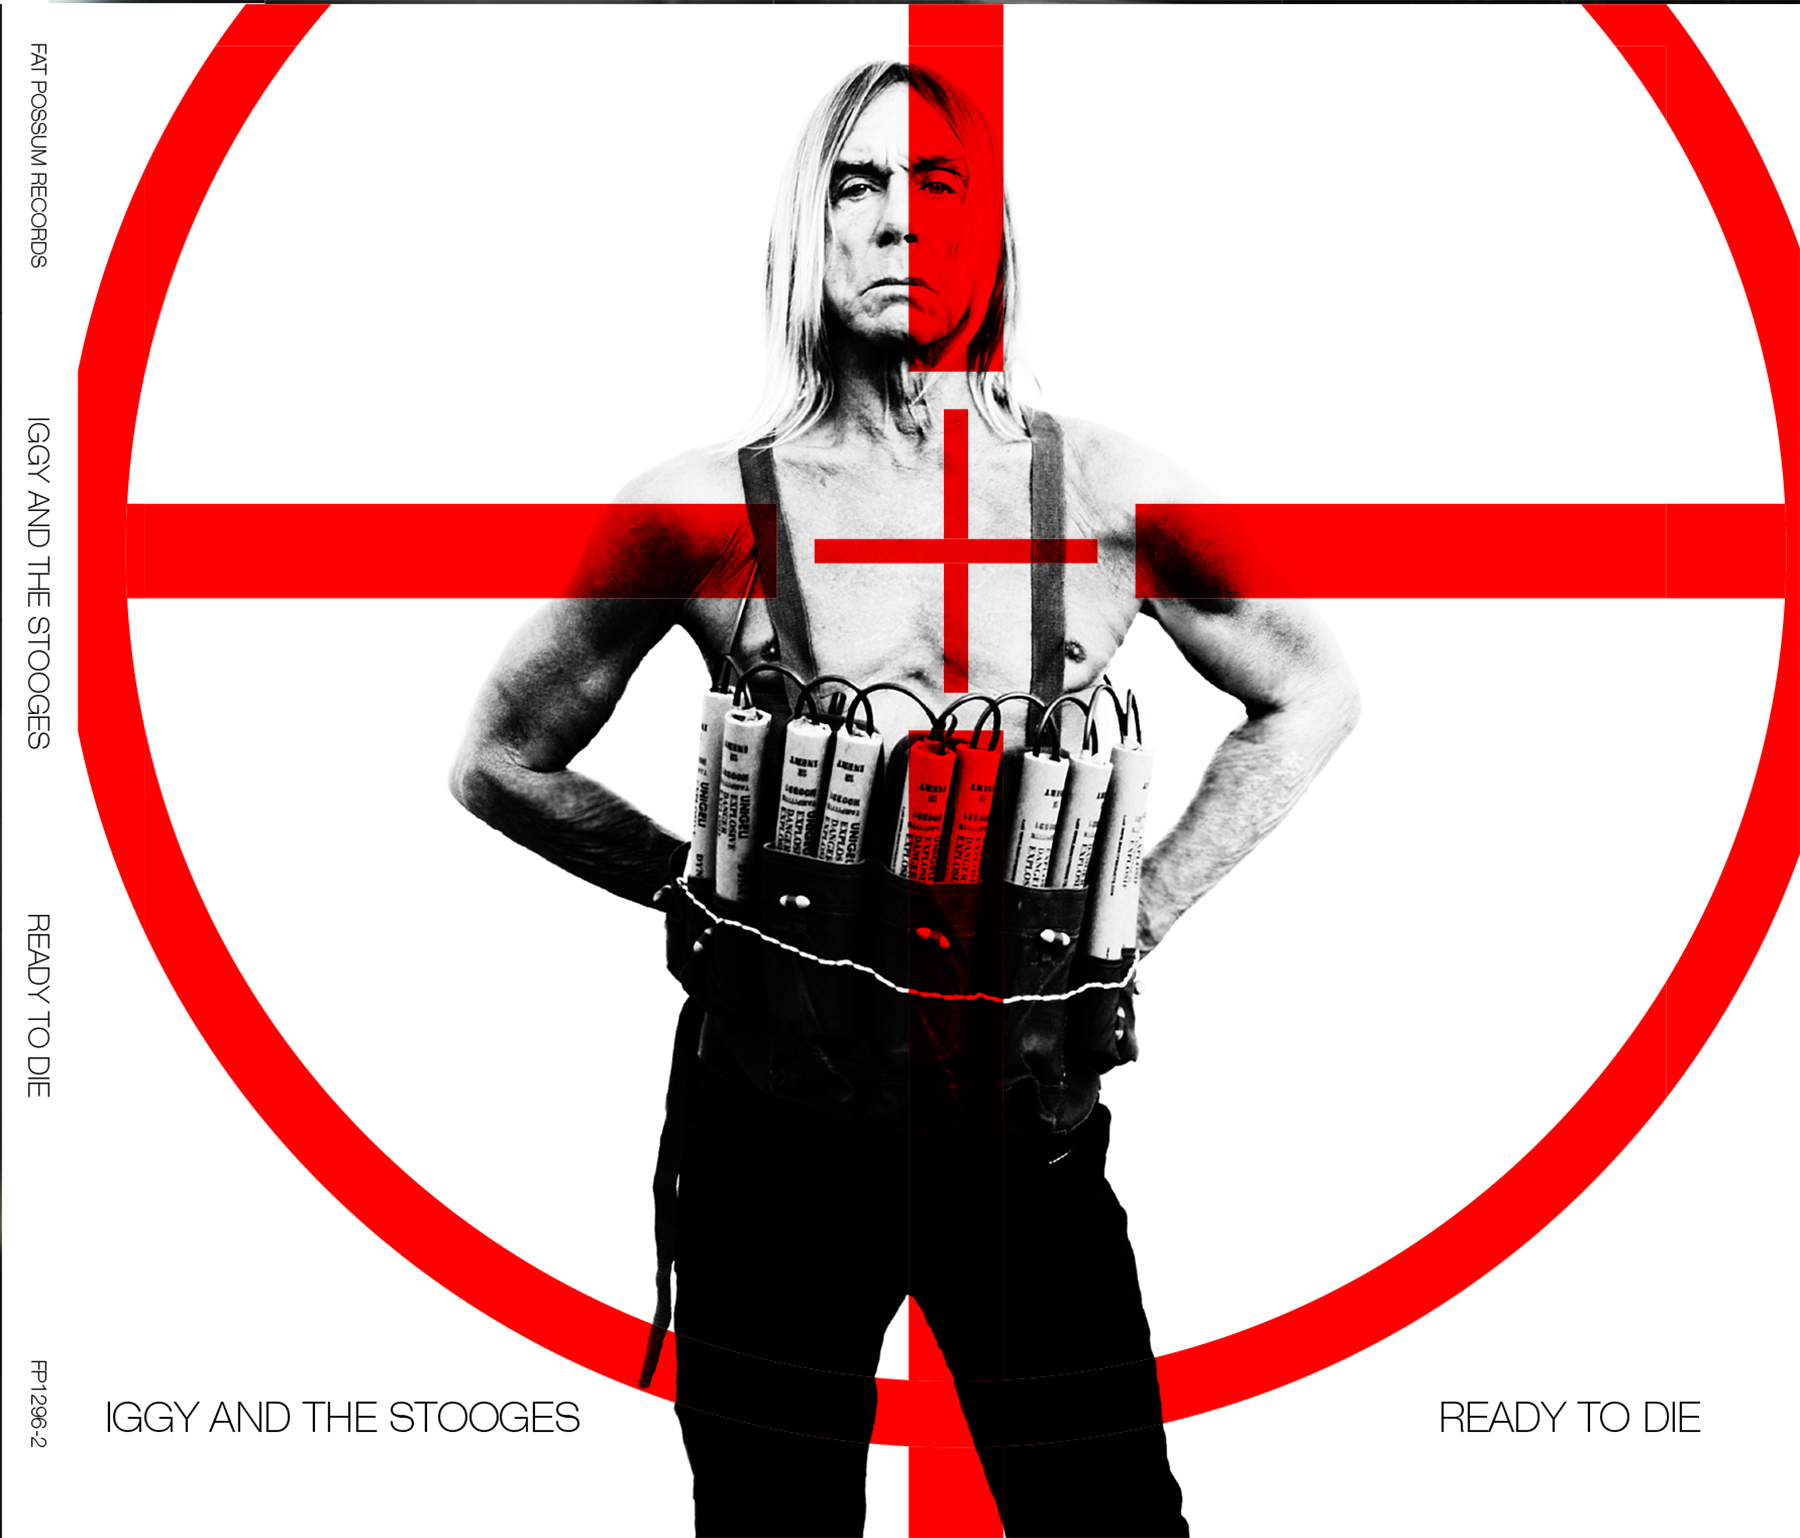 Iggy & The Stooges - ready to die